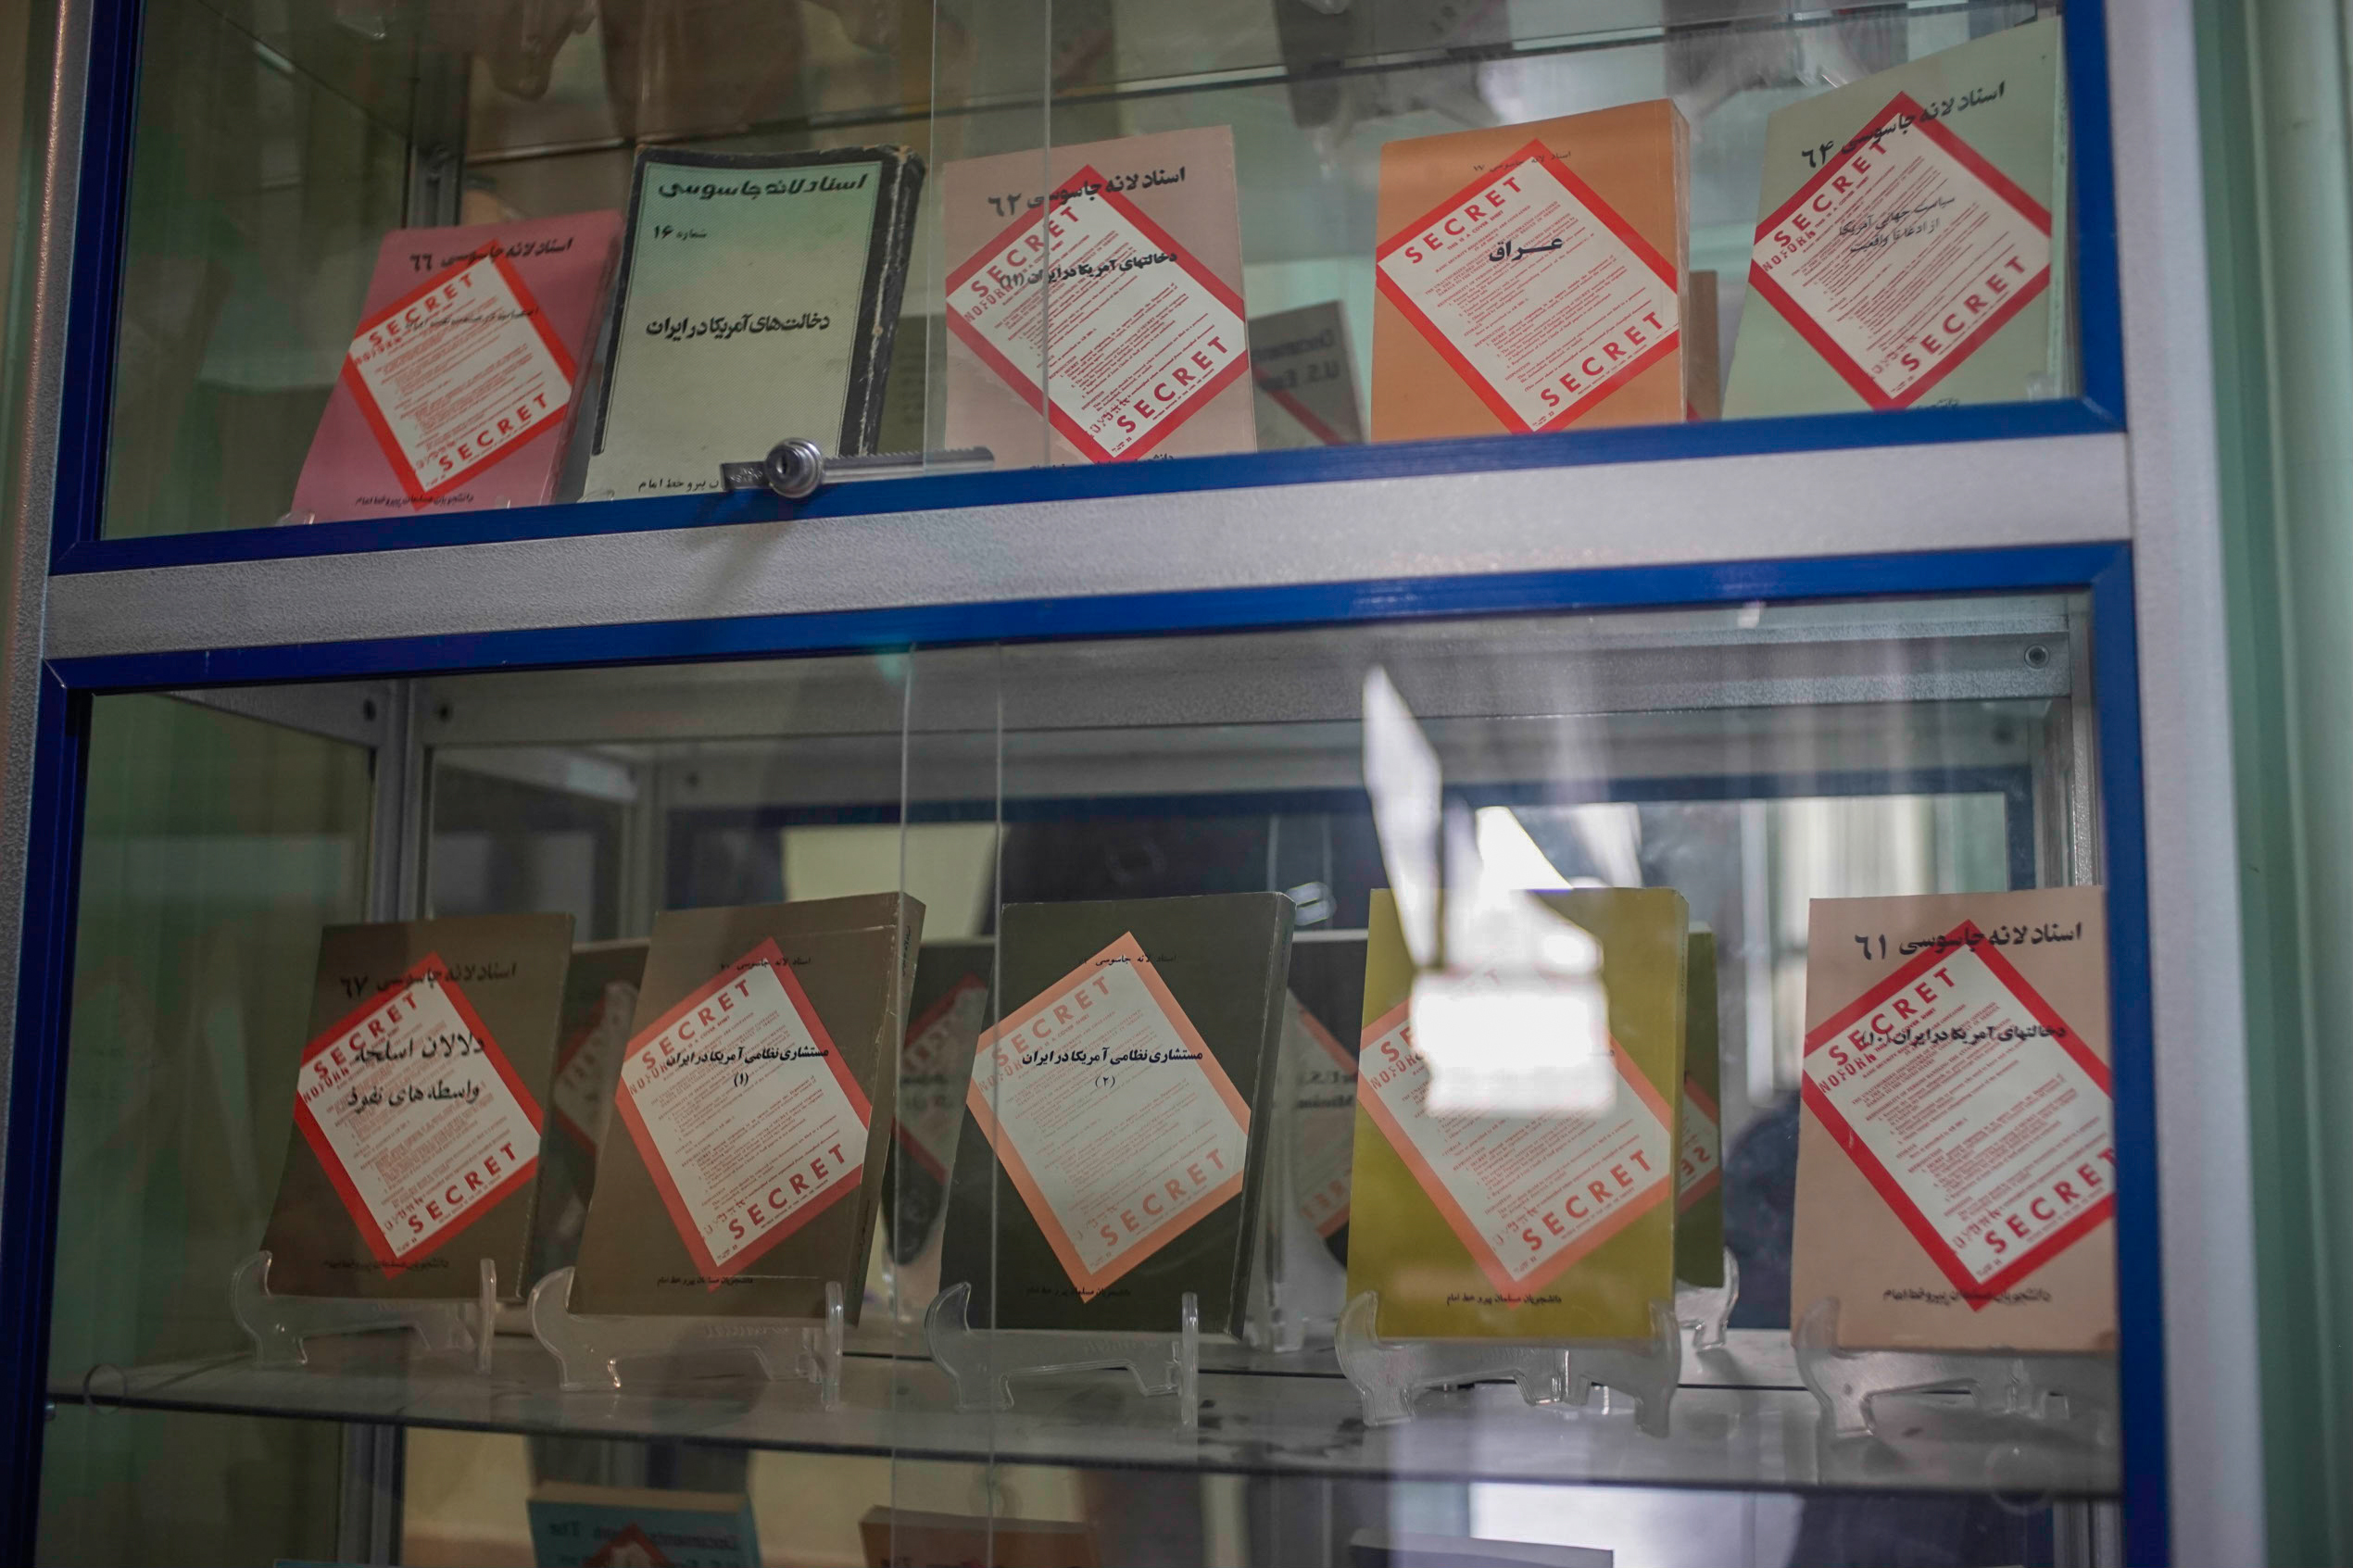 In one hallway sits a display case full of books the Iranians published containing what they allege were the various classified documents discovered inside the U.S. embassy in 1979.